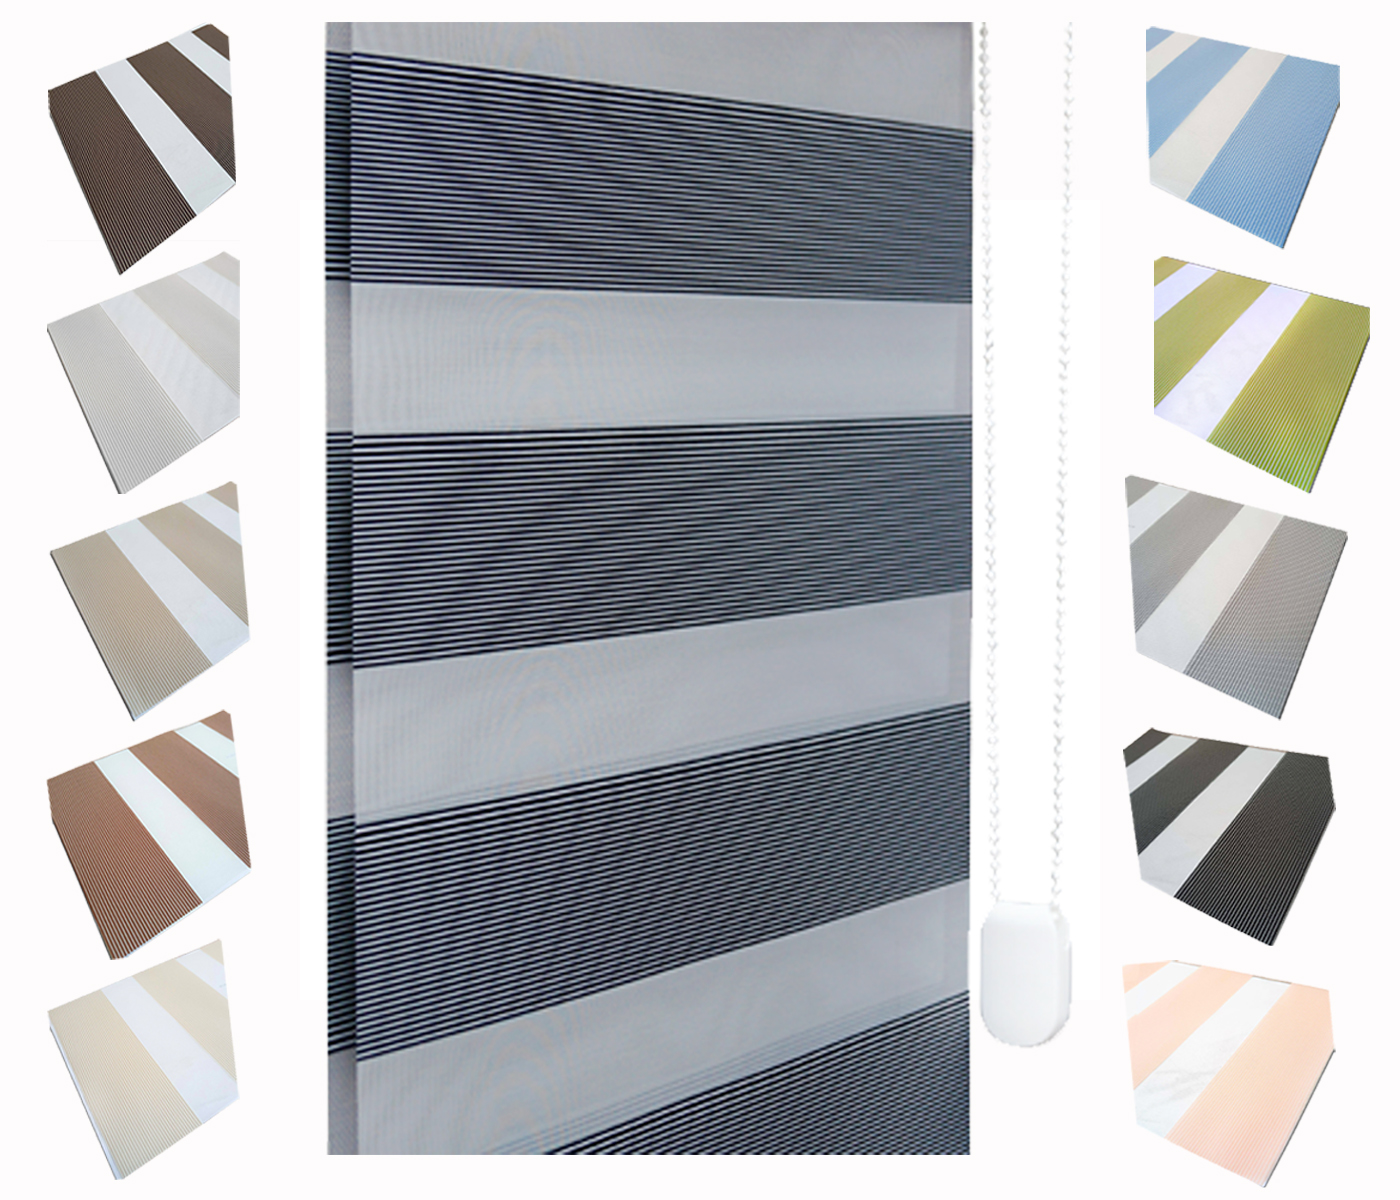 Vision PREMIUM Grey Day /& Night Zebra Blinds UK PRODUCT Made to measure